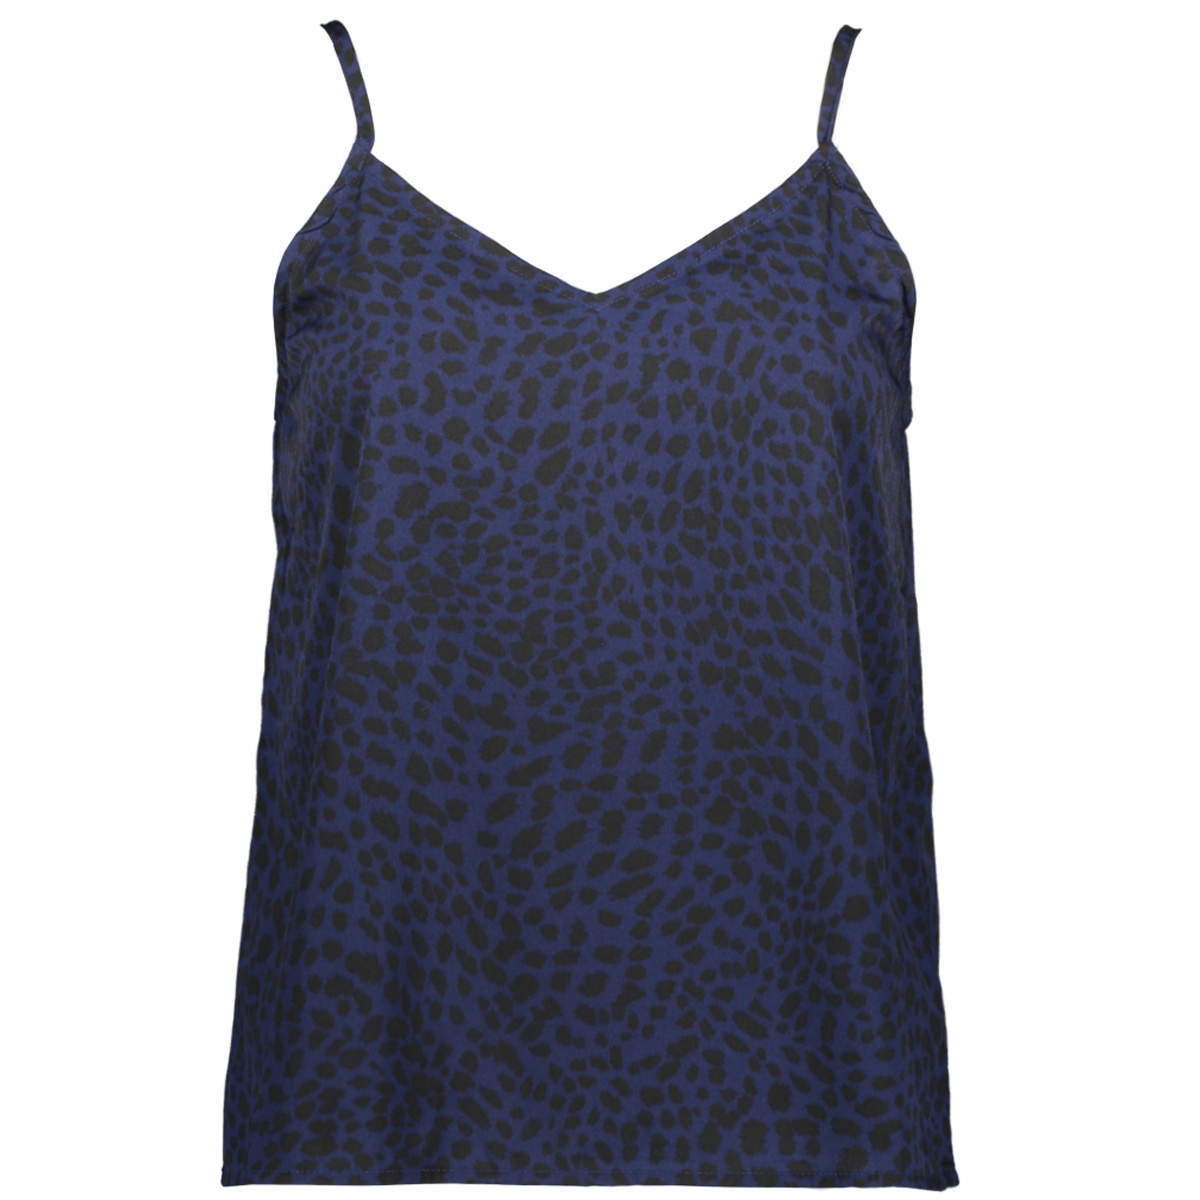 onlftaylor singlet wvn 15186152 only top peacoat/appaloosa